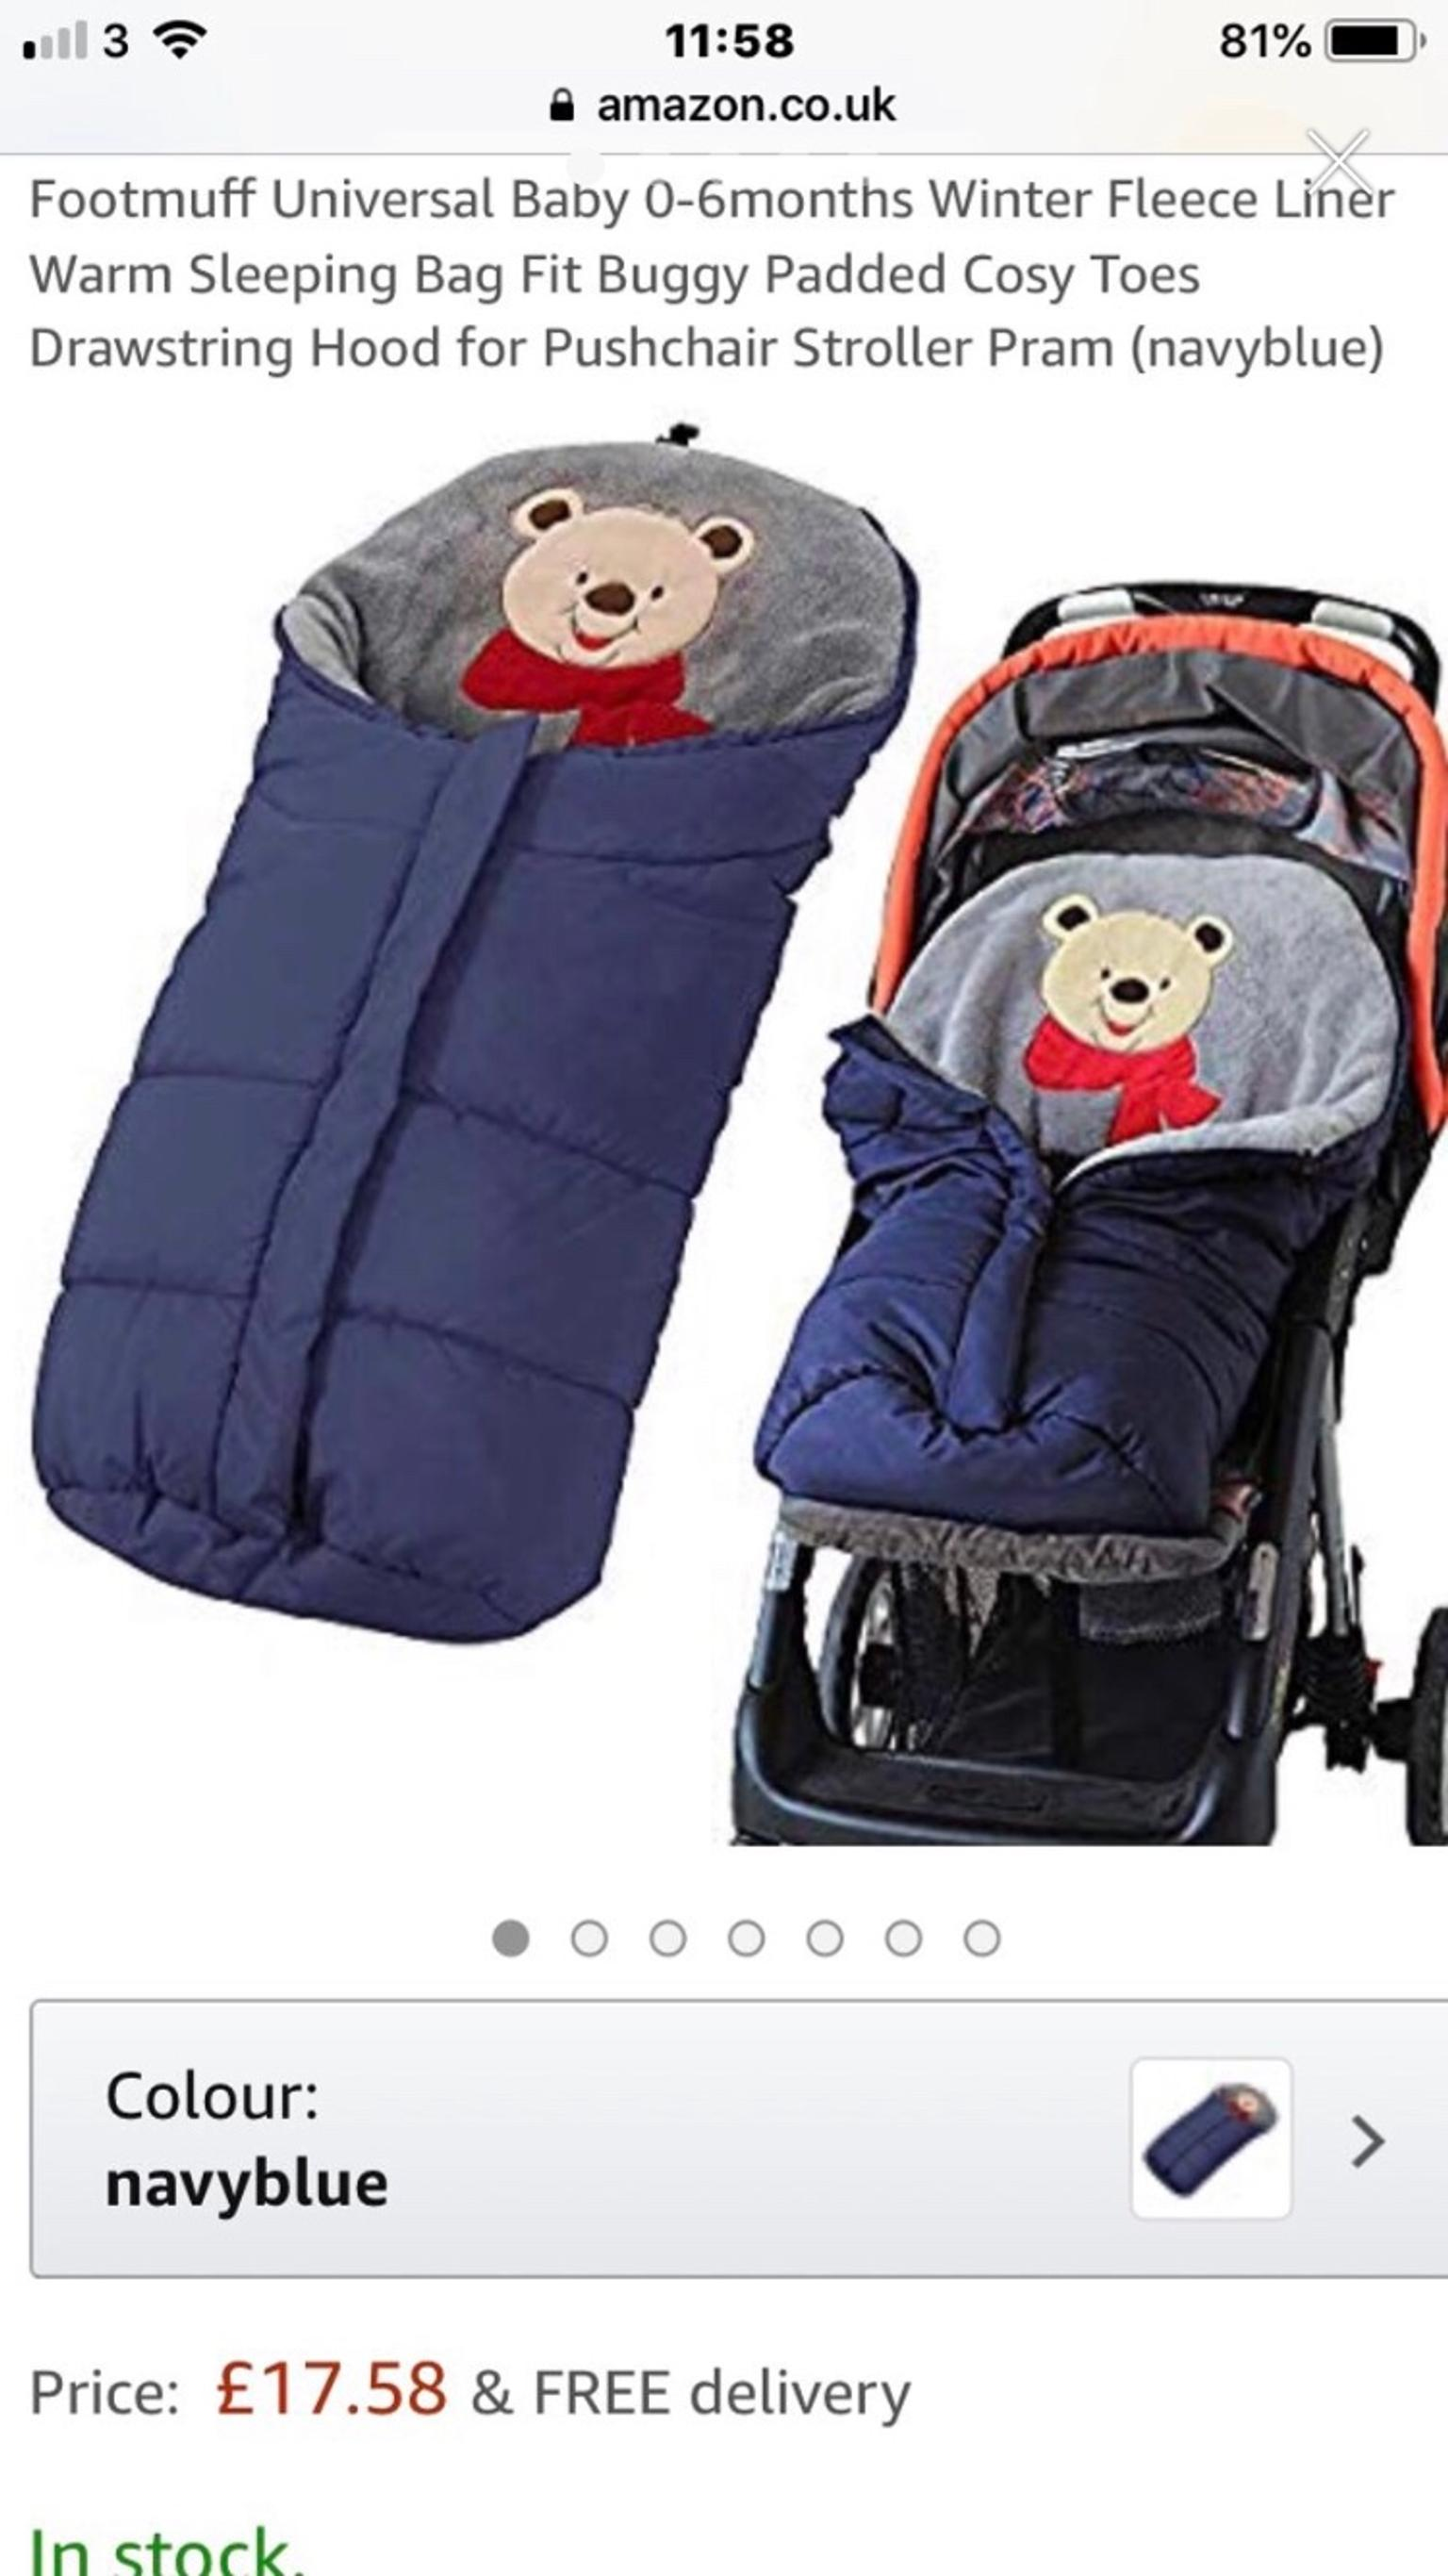 BABY FOOTMUFF FIT PUSHCHAIR BUGGY STROLLER PRAM BABY COSY TOES 4 COLOURS